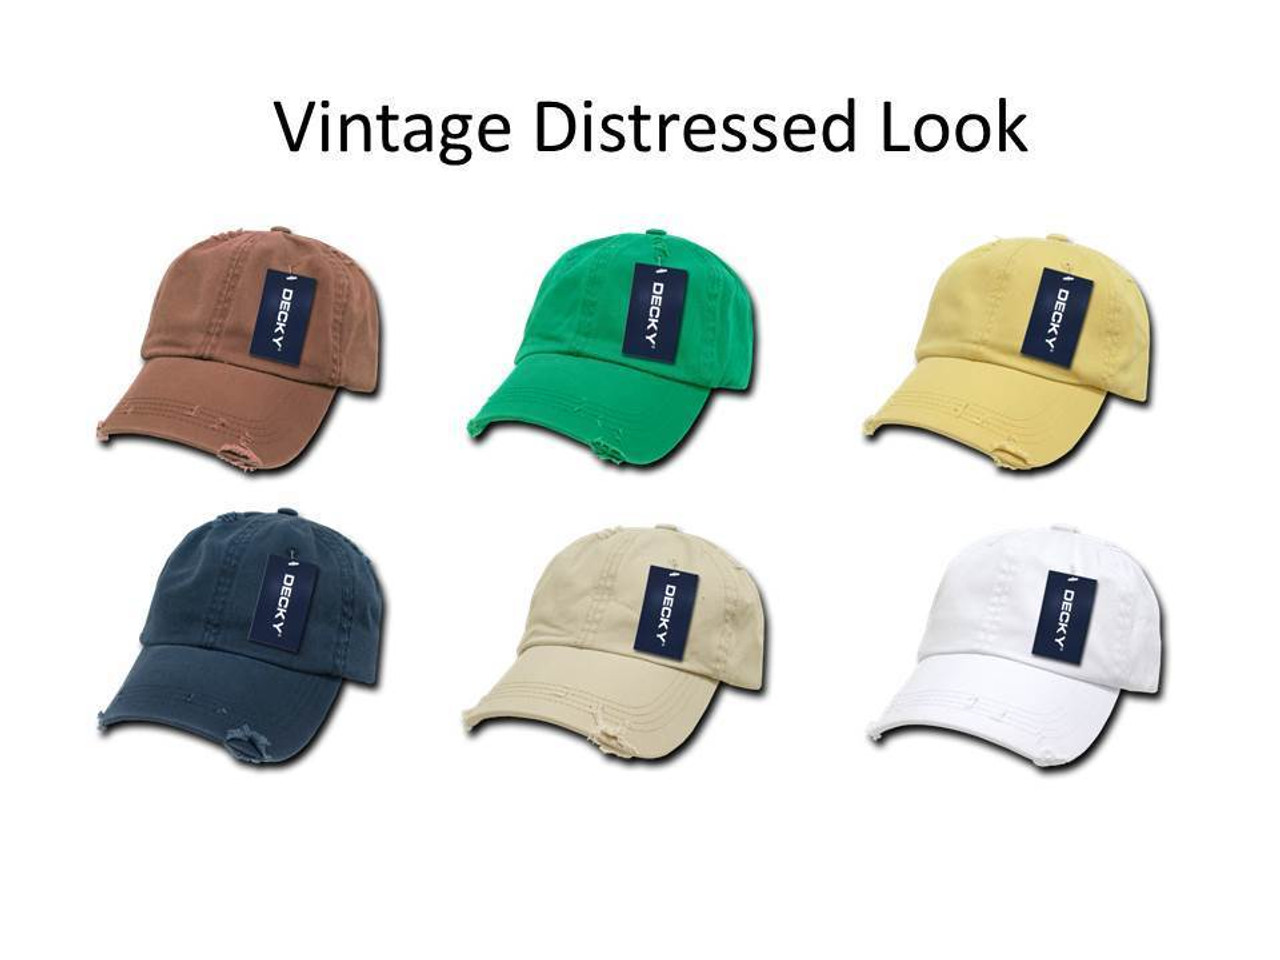 Vintage Distressed Retro Polo Hat Low Profile Baseball Cap Golf Hat Hats  Caps b5bc94a1330